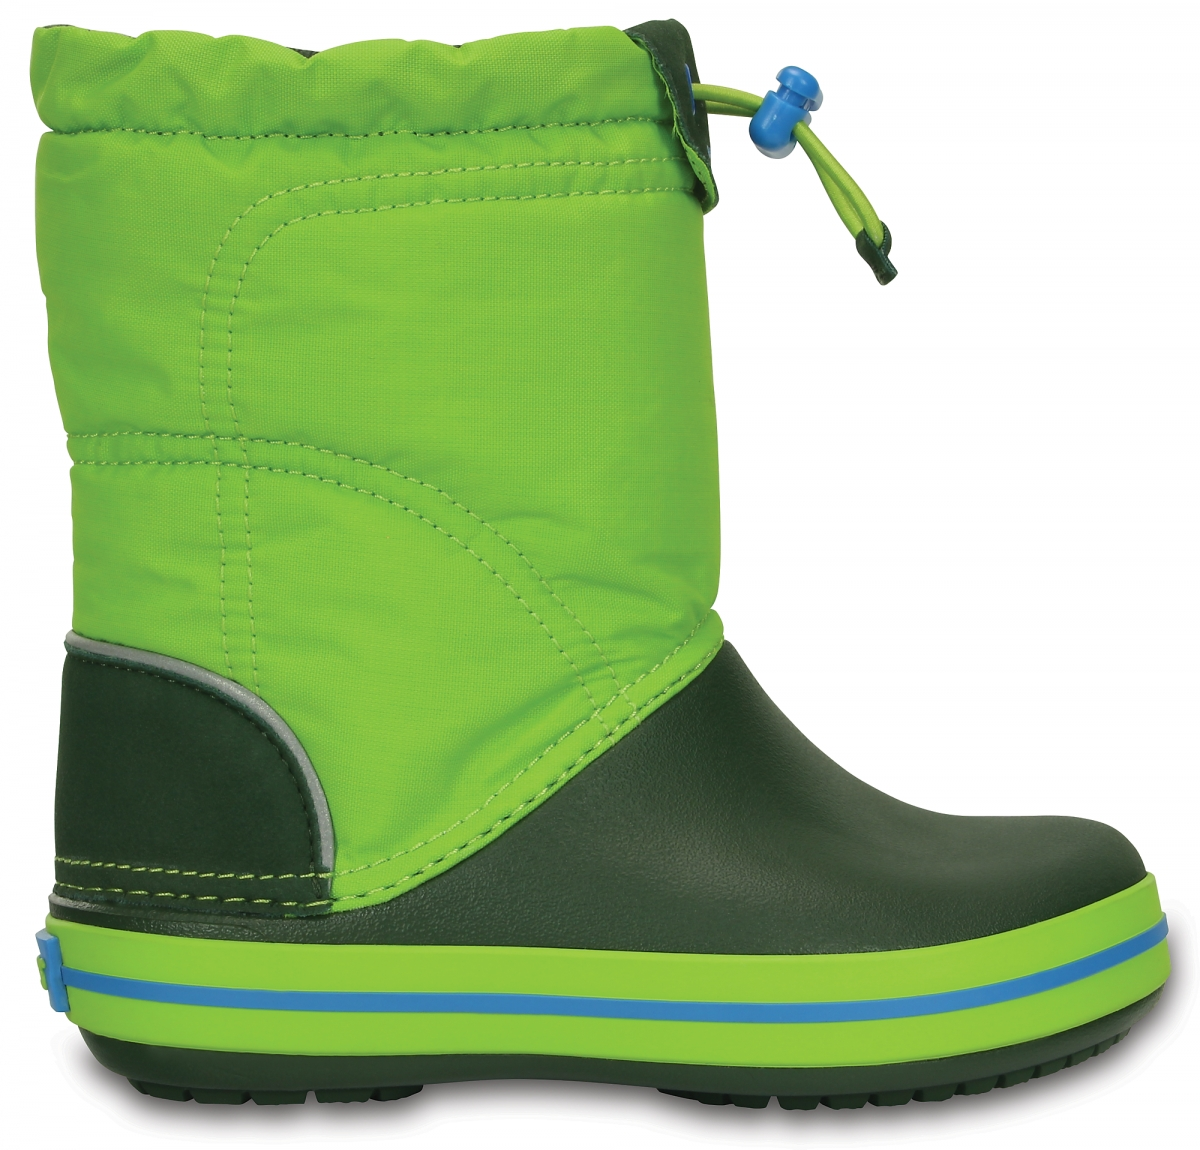 Crocs Crocband LodgePoint Boot Kids Lime/Forest Green, J1 (32-33)